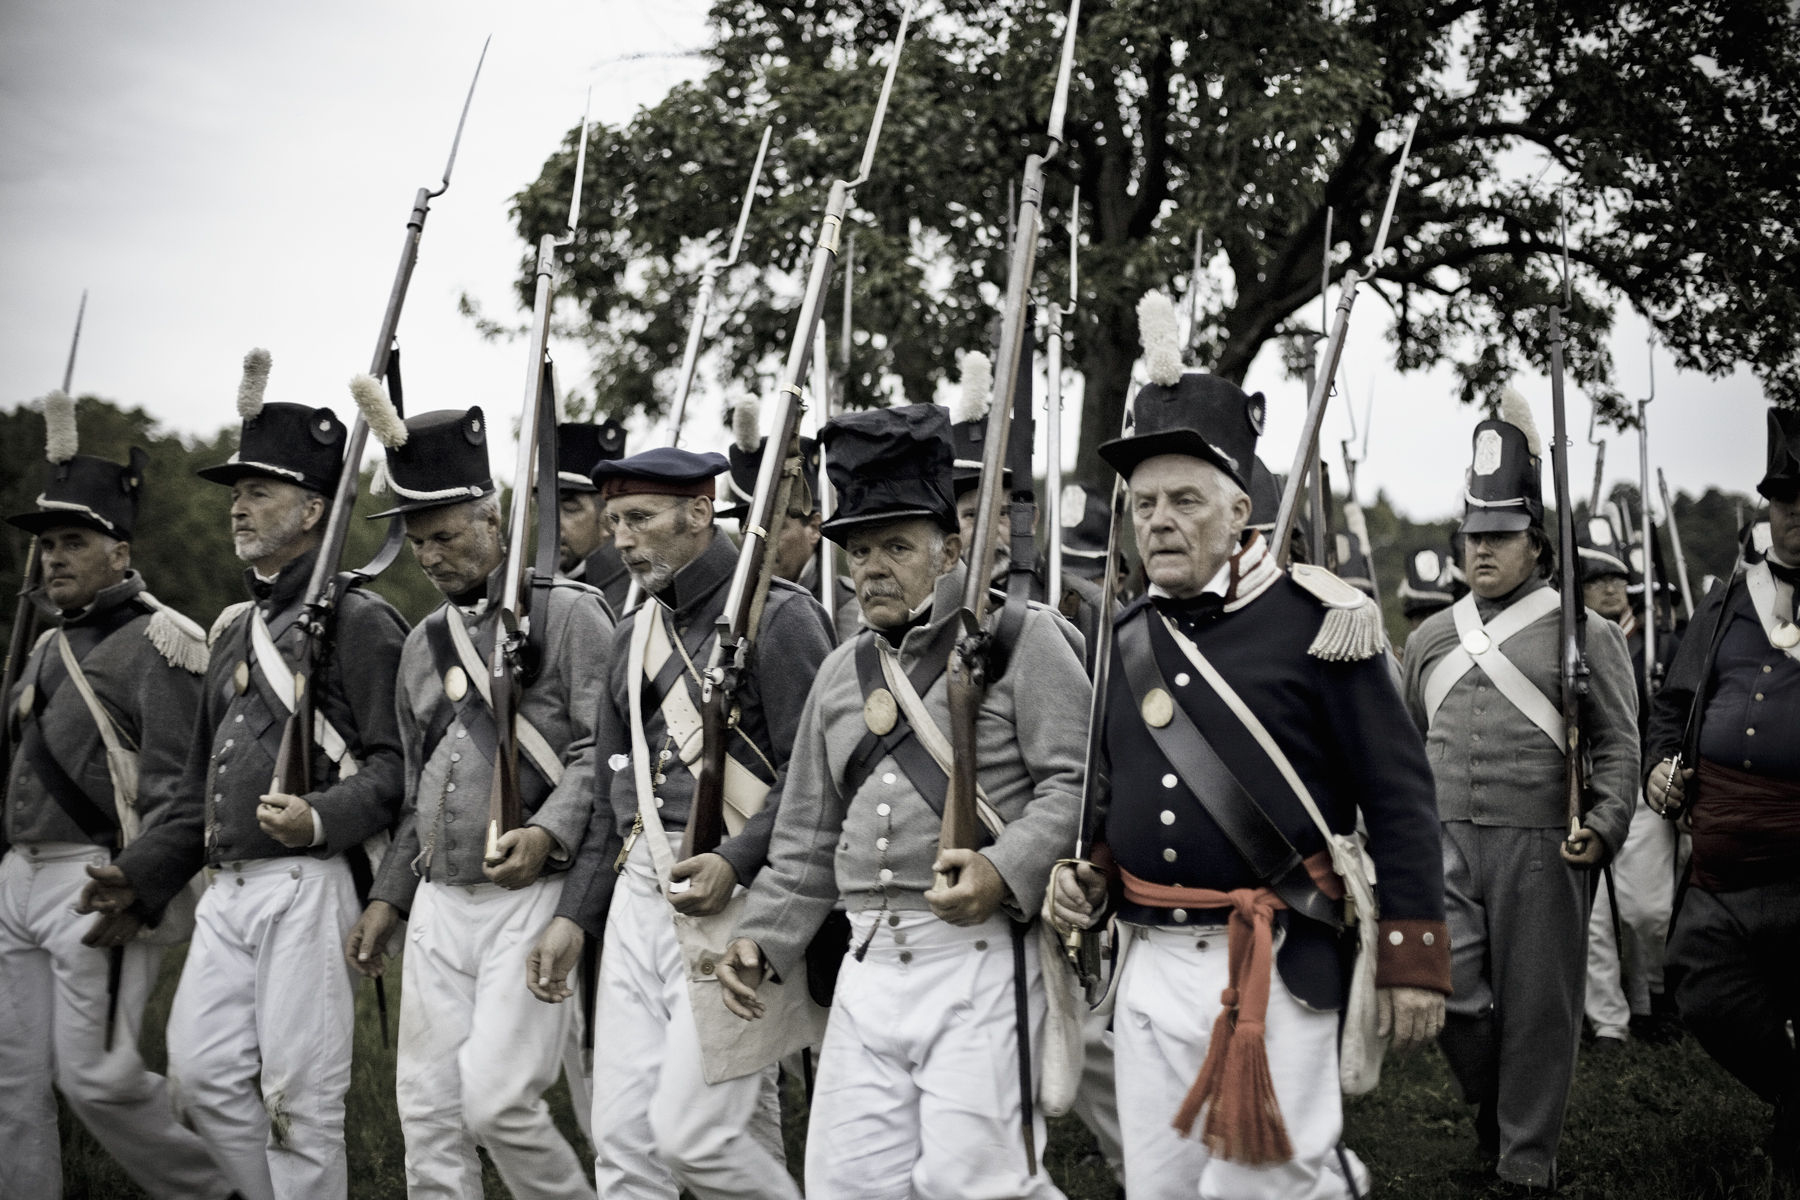 Canada,Ontario,Fort Erie,Old Fort Erie, War of 1812 re-enactment of the Battle of Stoney Creek.The 22nd US Infantry